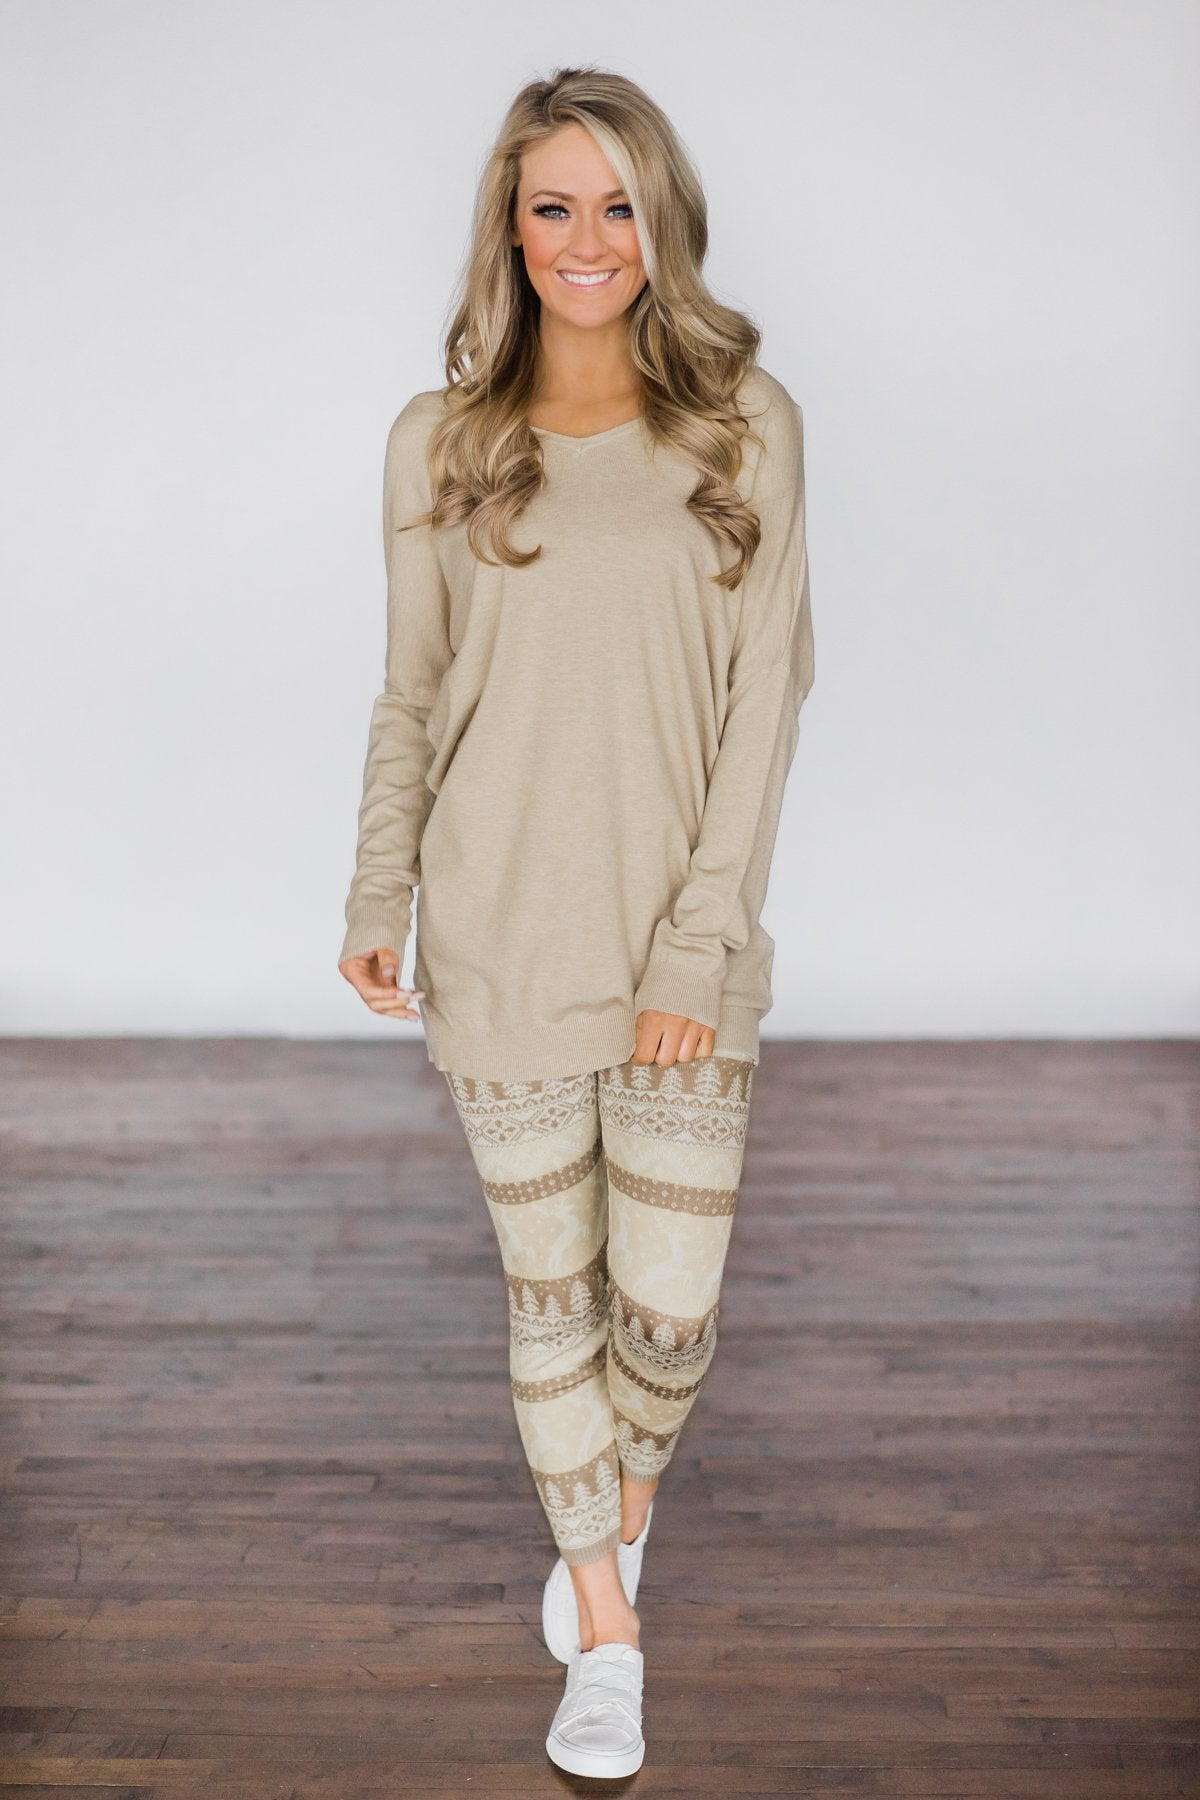 Criss Cross Back Detail Sweater - Taupe